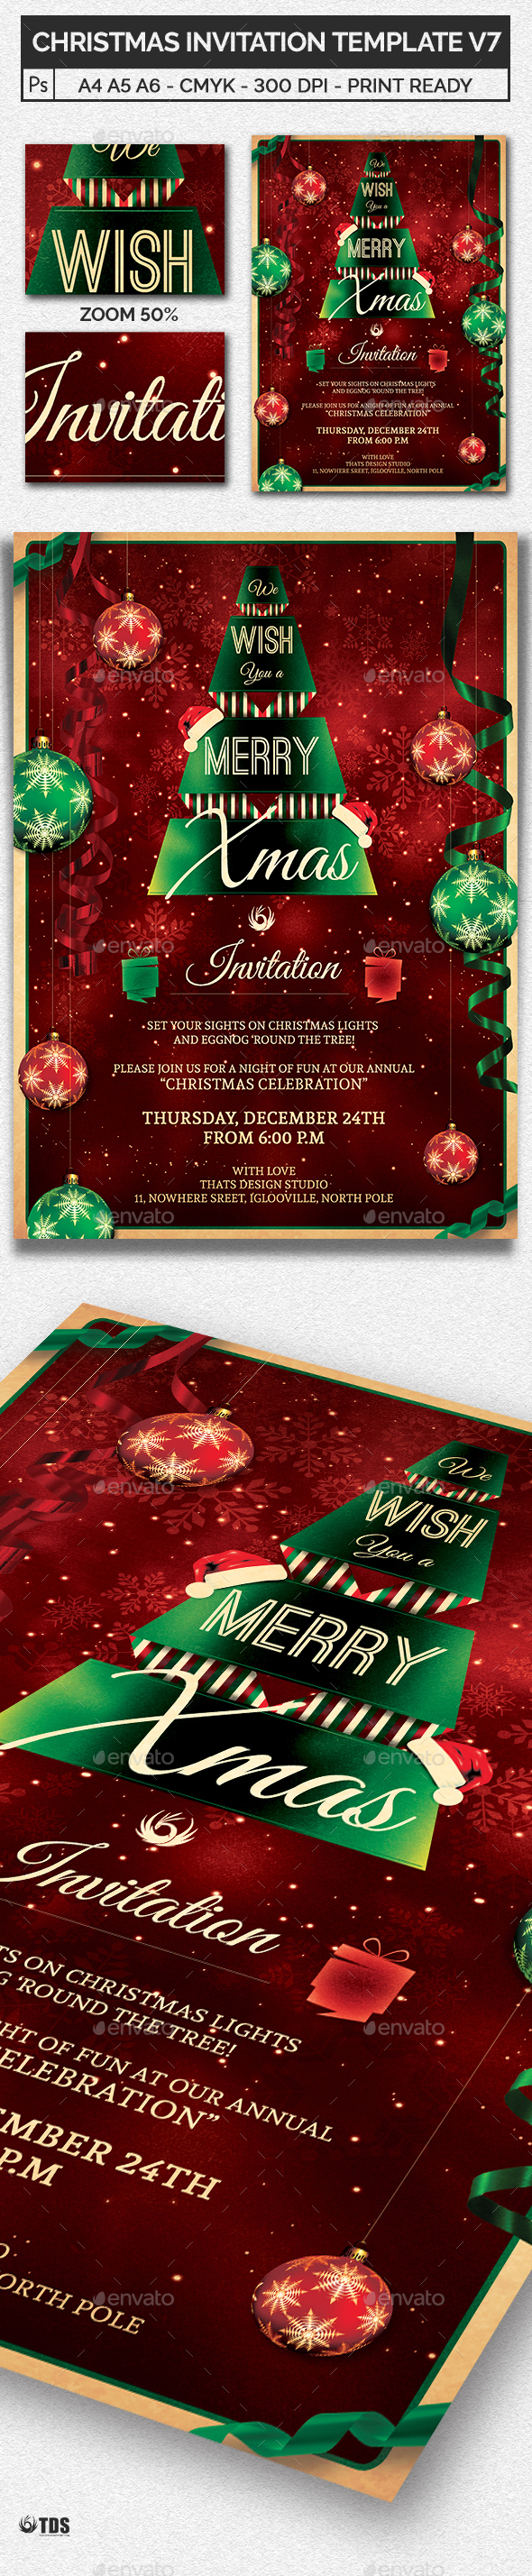 Christmas Invitation Template V7 - Invitations Cards & Invites